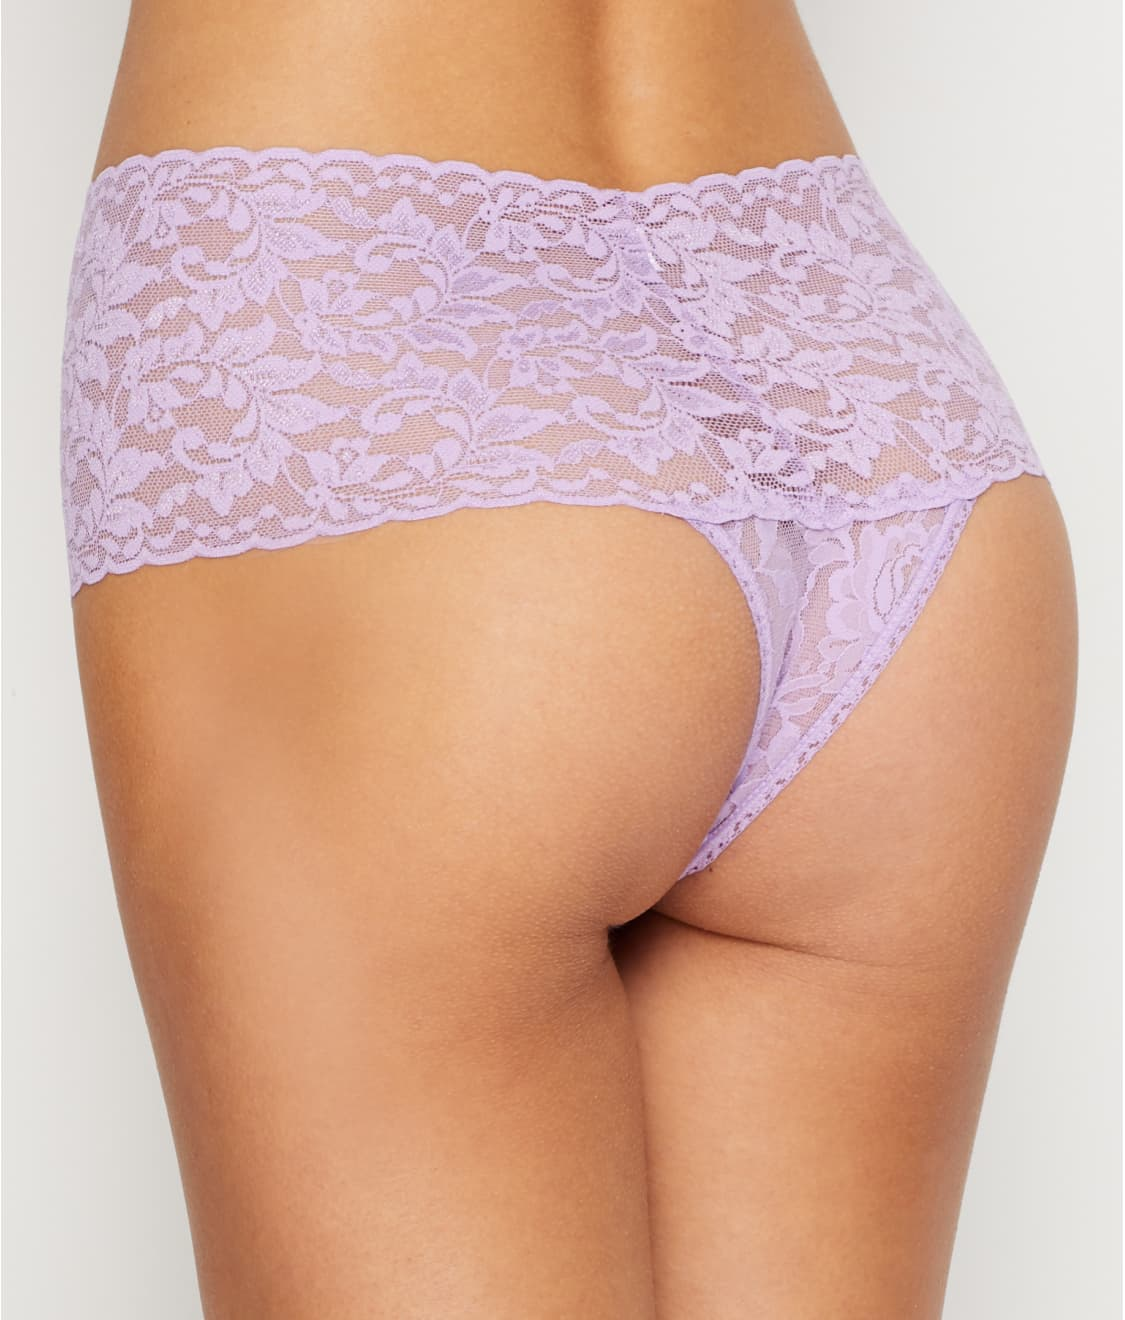 1a3d19032 See Signature Lace Retro Thong in Lavender Satchet